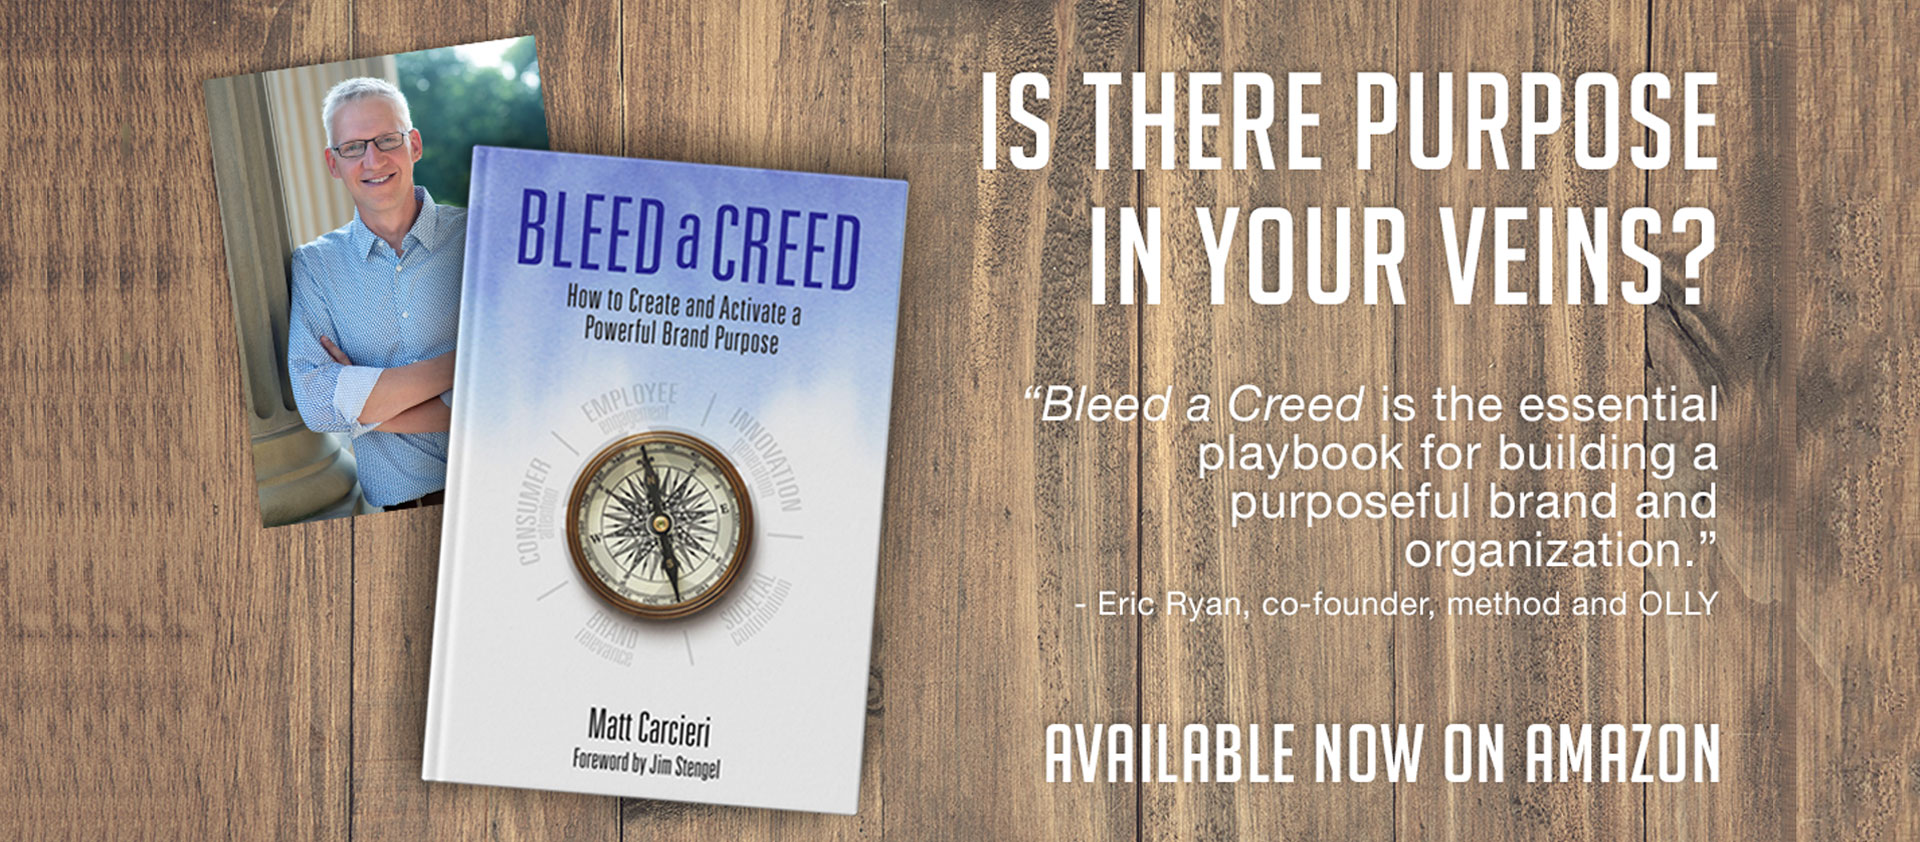 Is the purpose in your veins poster, bleed a creed book